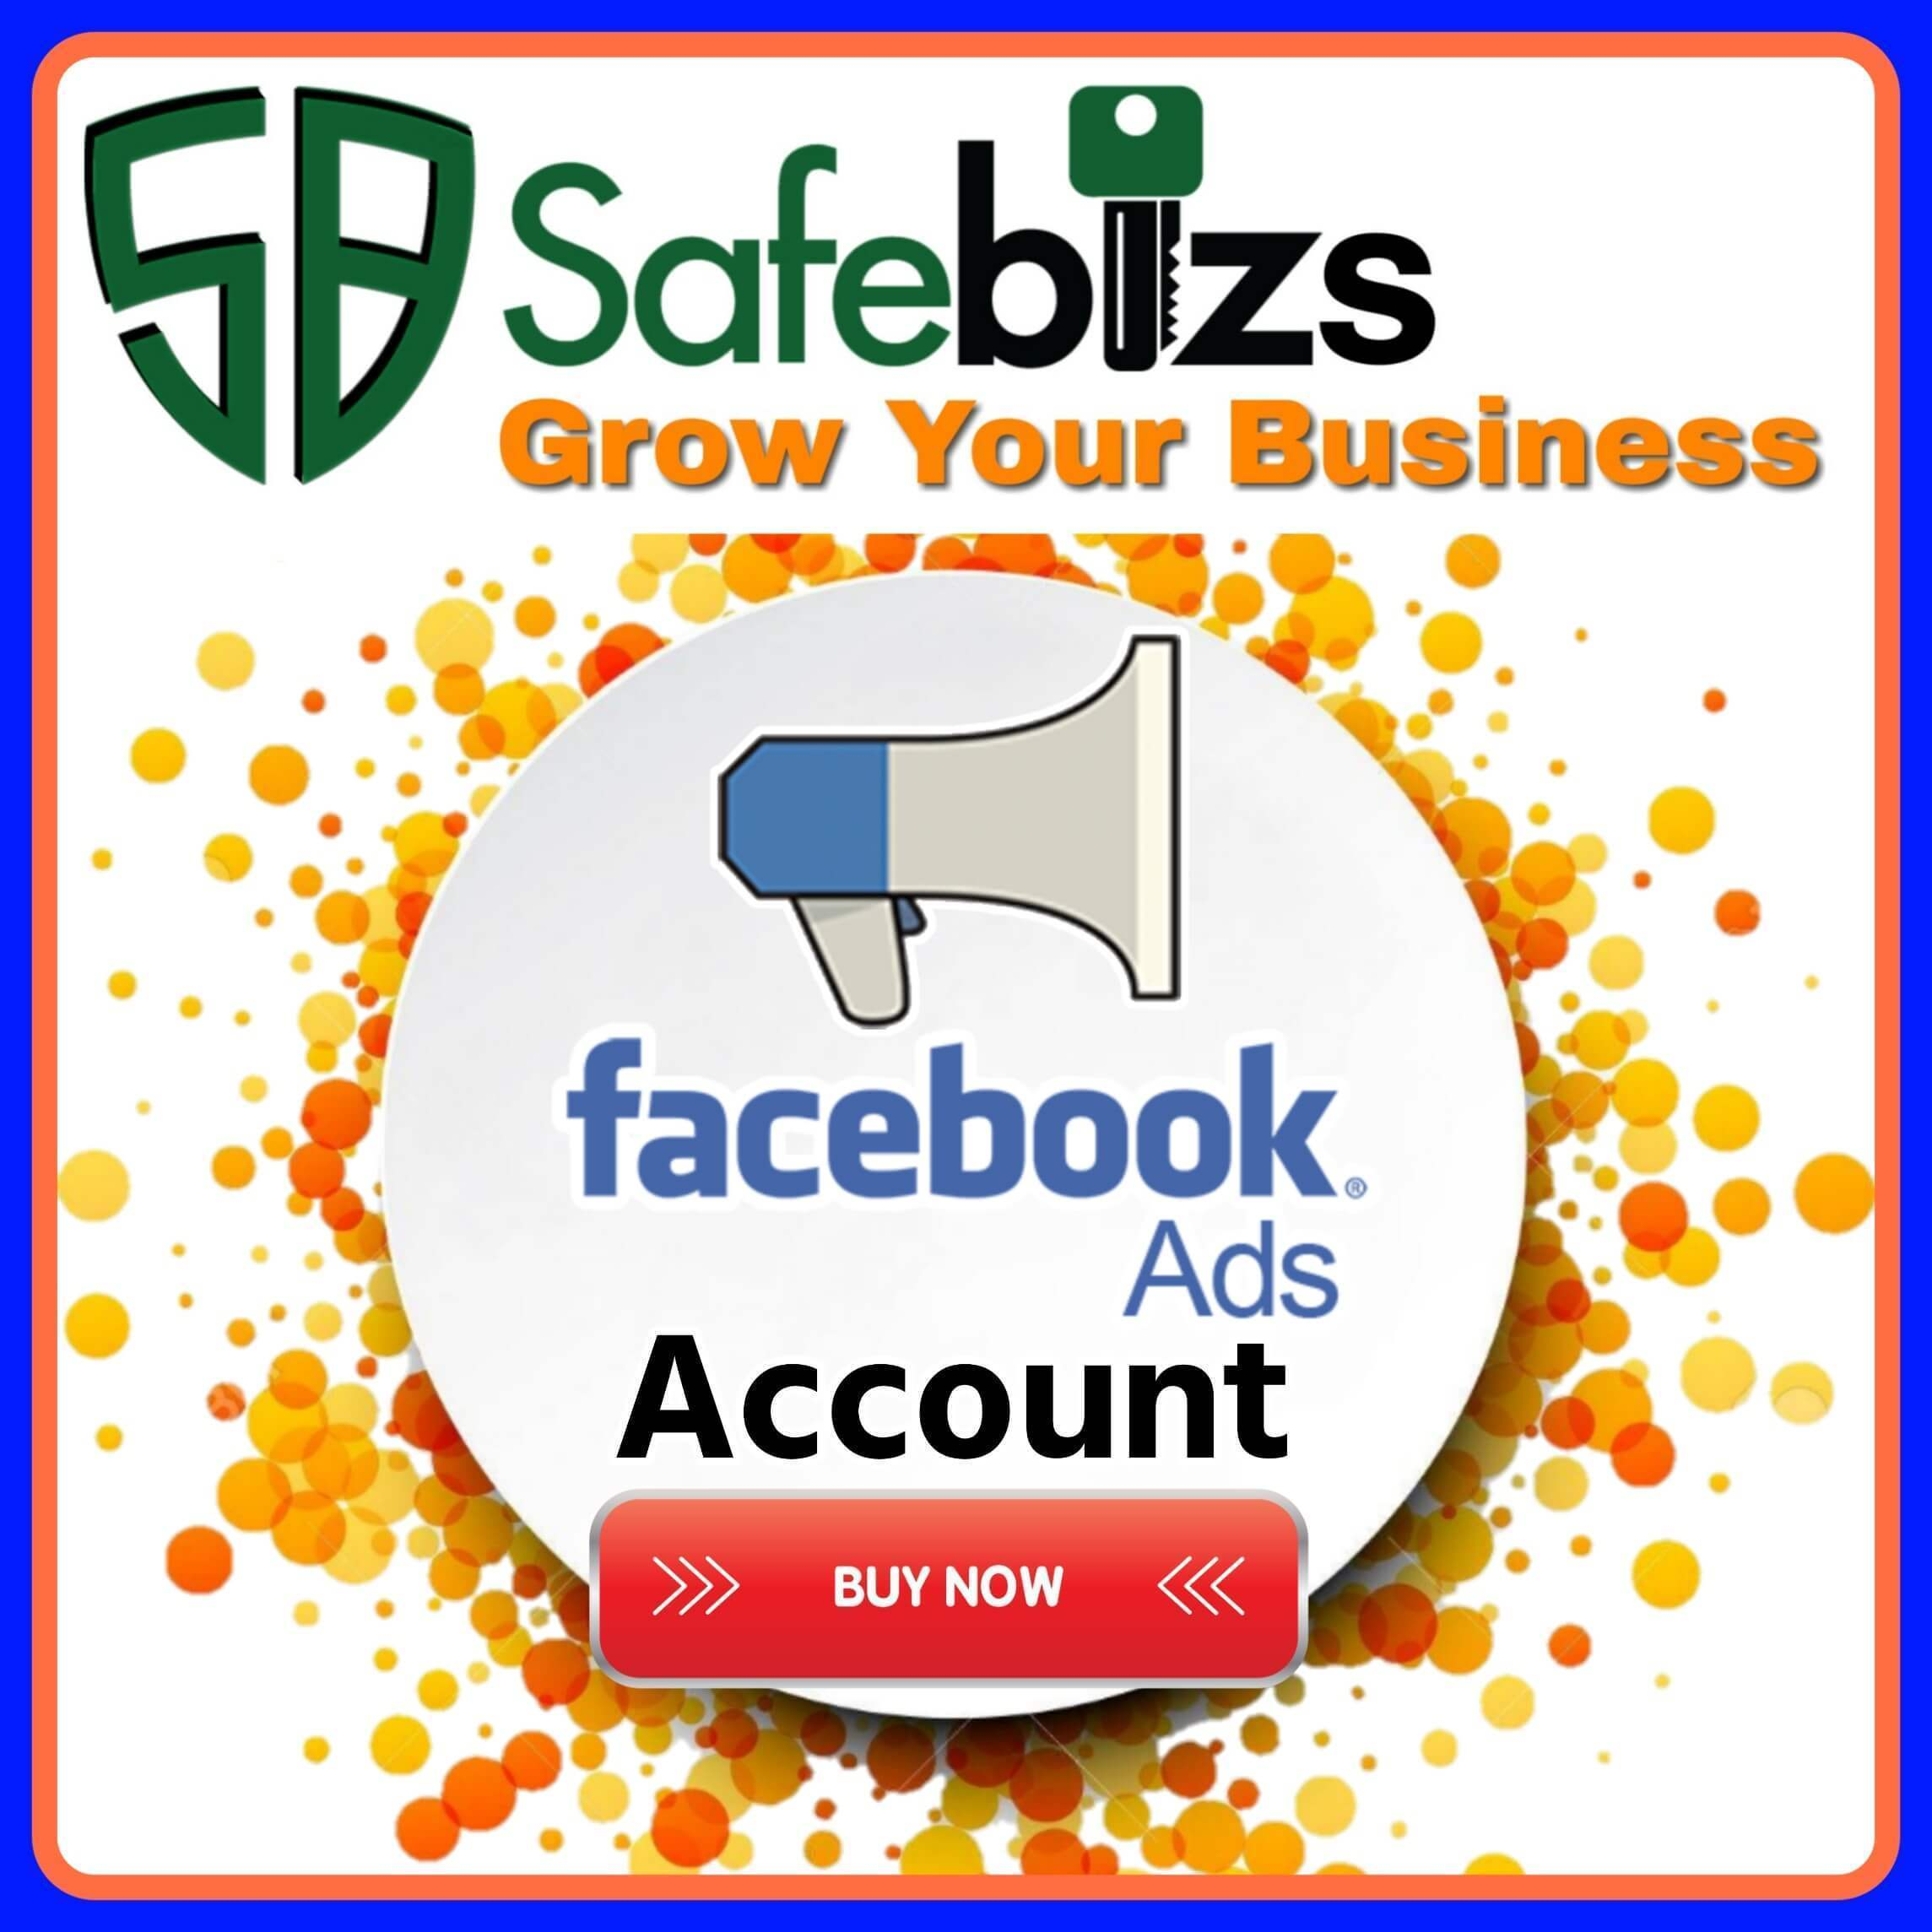 Buy Facebook Ads Accounts - 100% Real and Active Account